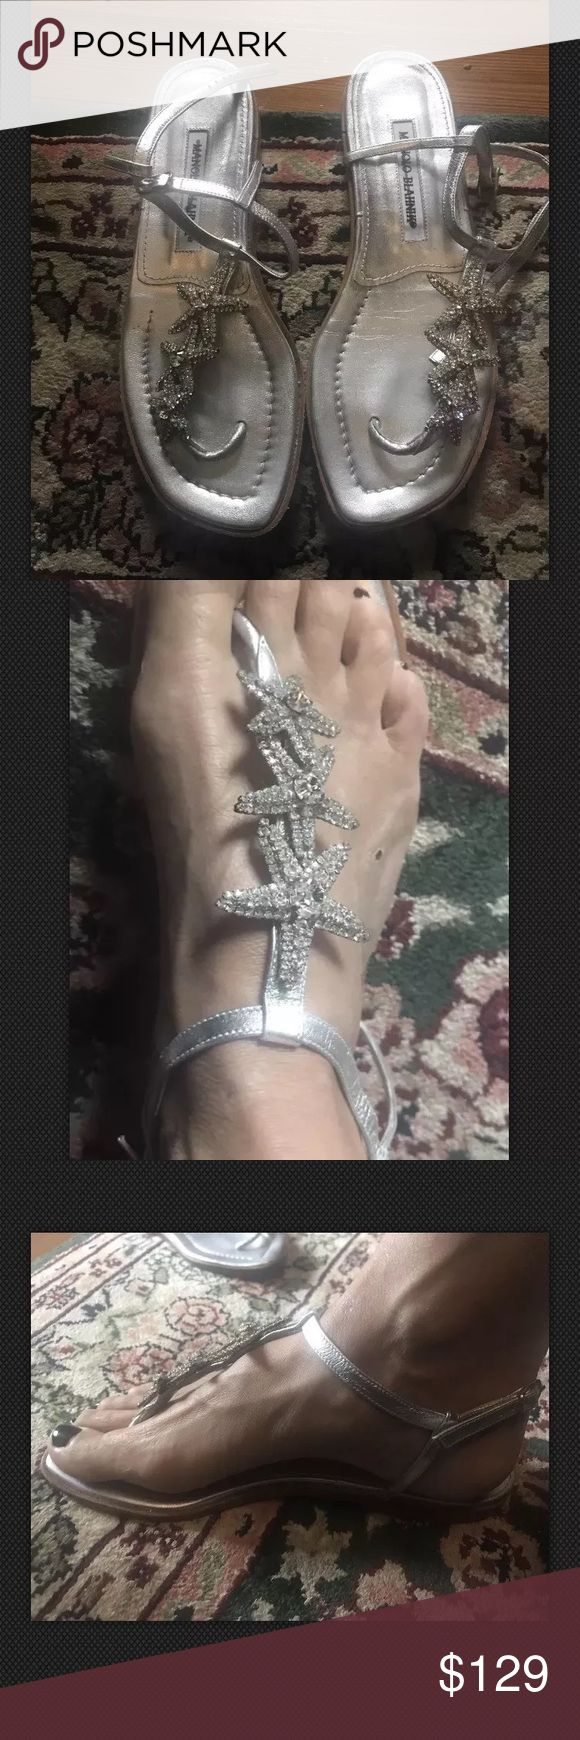 Manolo Blahnik Rhinestone Starfish Sandals Manolo Blahnik Rhinestone starfish sandals are great to wear with any outfit! They add some sparkle to any day, any time! Classic Manolo and fun! In great condition, only worn once.... Manolo Blahnik Shoes Sandals